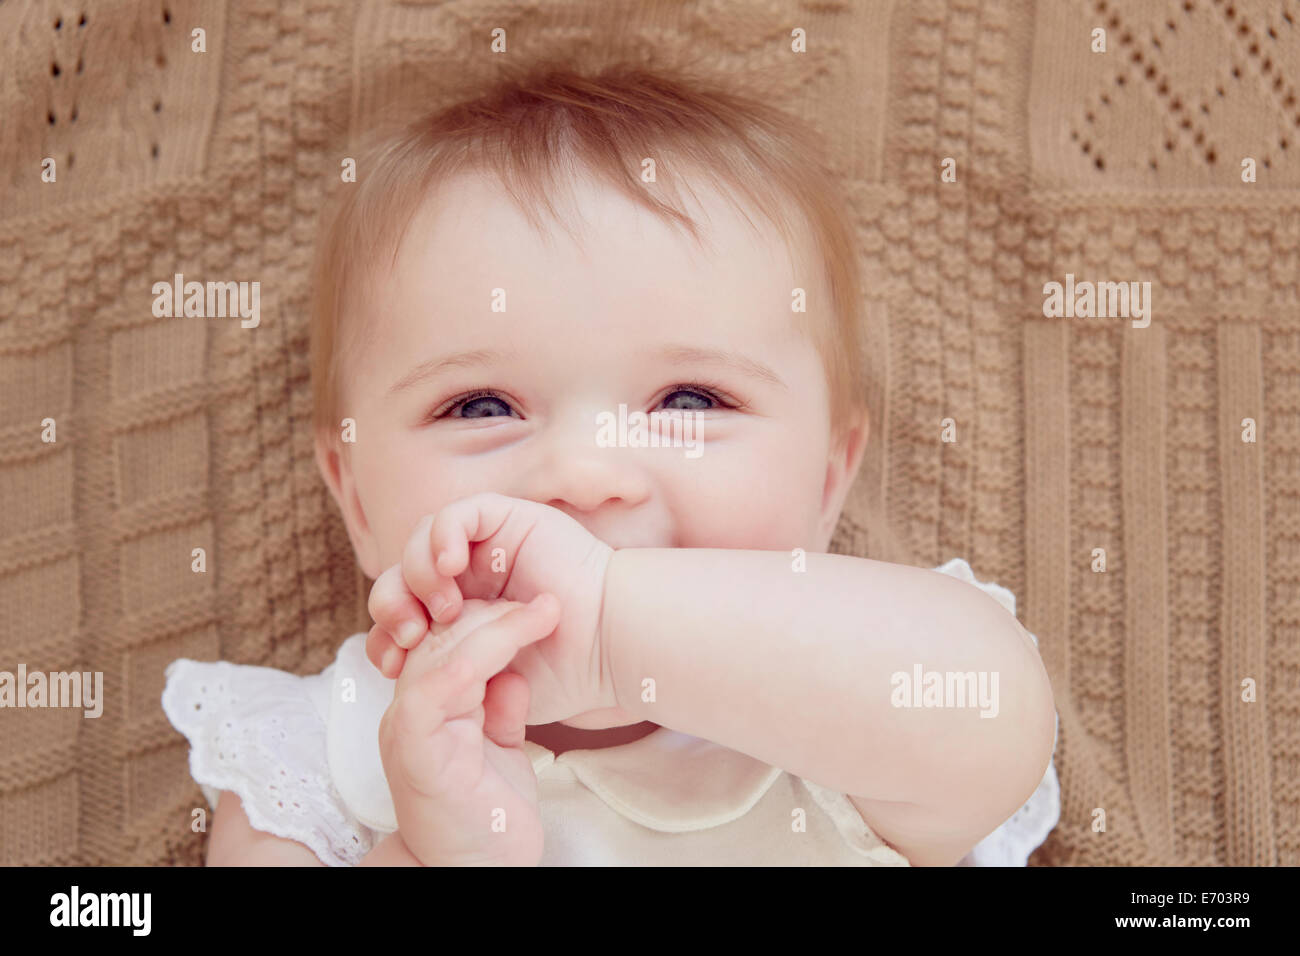 Close up portrait of smiling baby girl lying on blanket Photo Stock